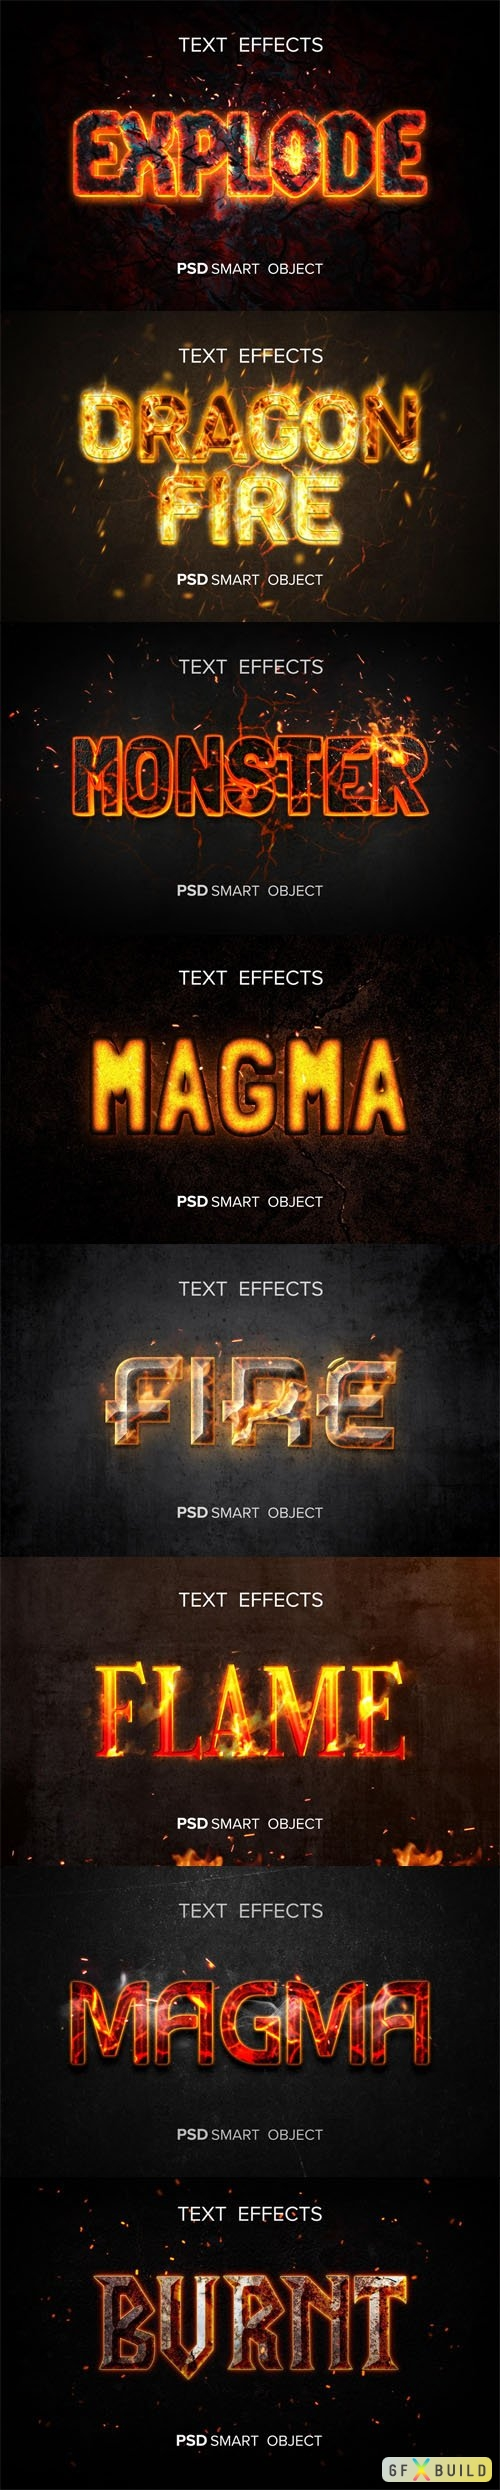 8 Fire Text Effects Templates for Photoshop